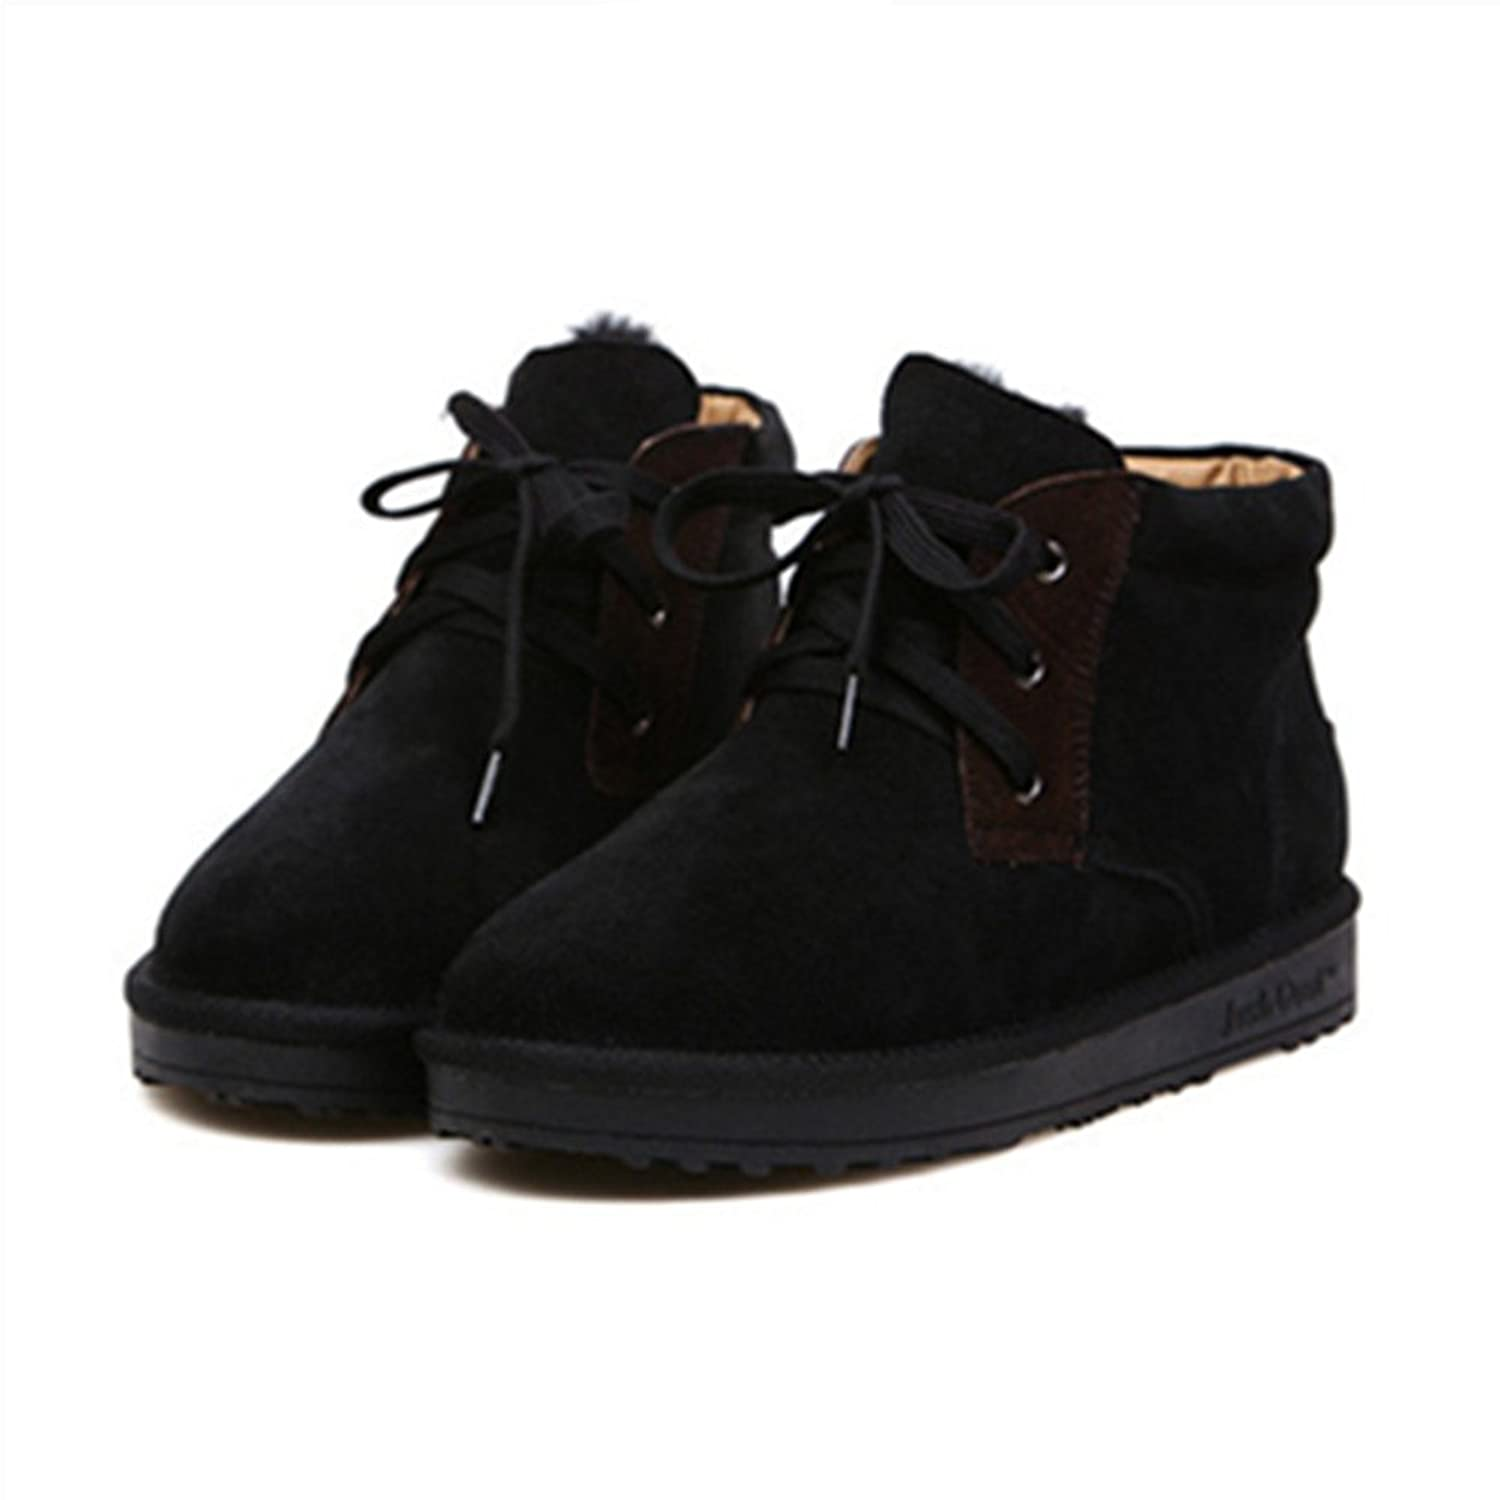 Men`s Martin Snow Boots Winter Warm Snow Boots Lace up Short Ankle Boots Black